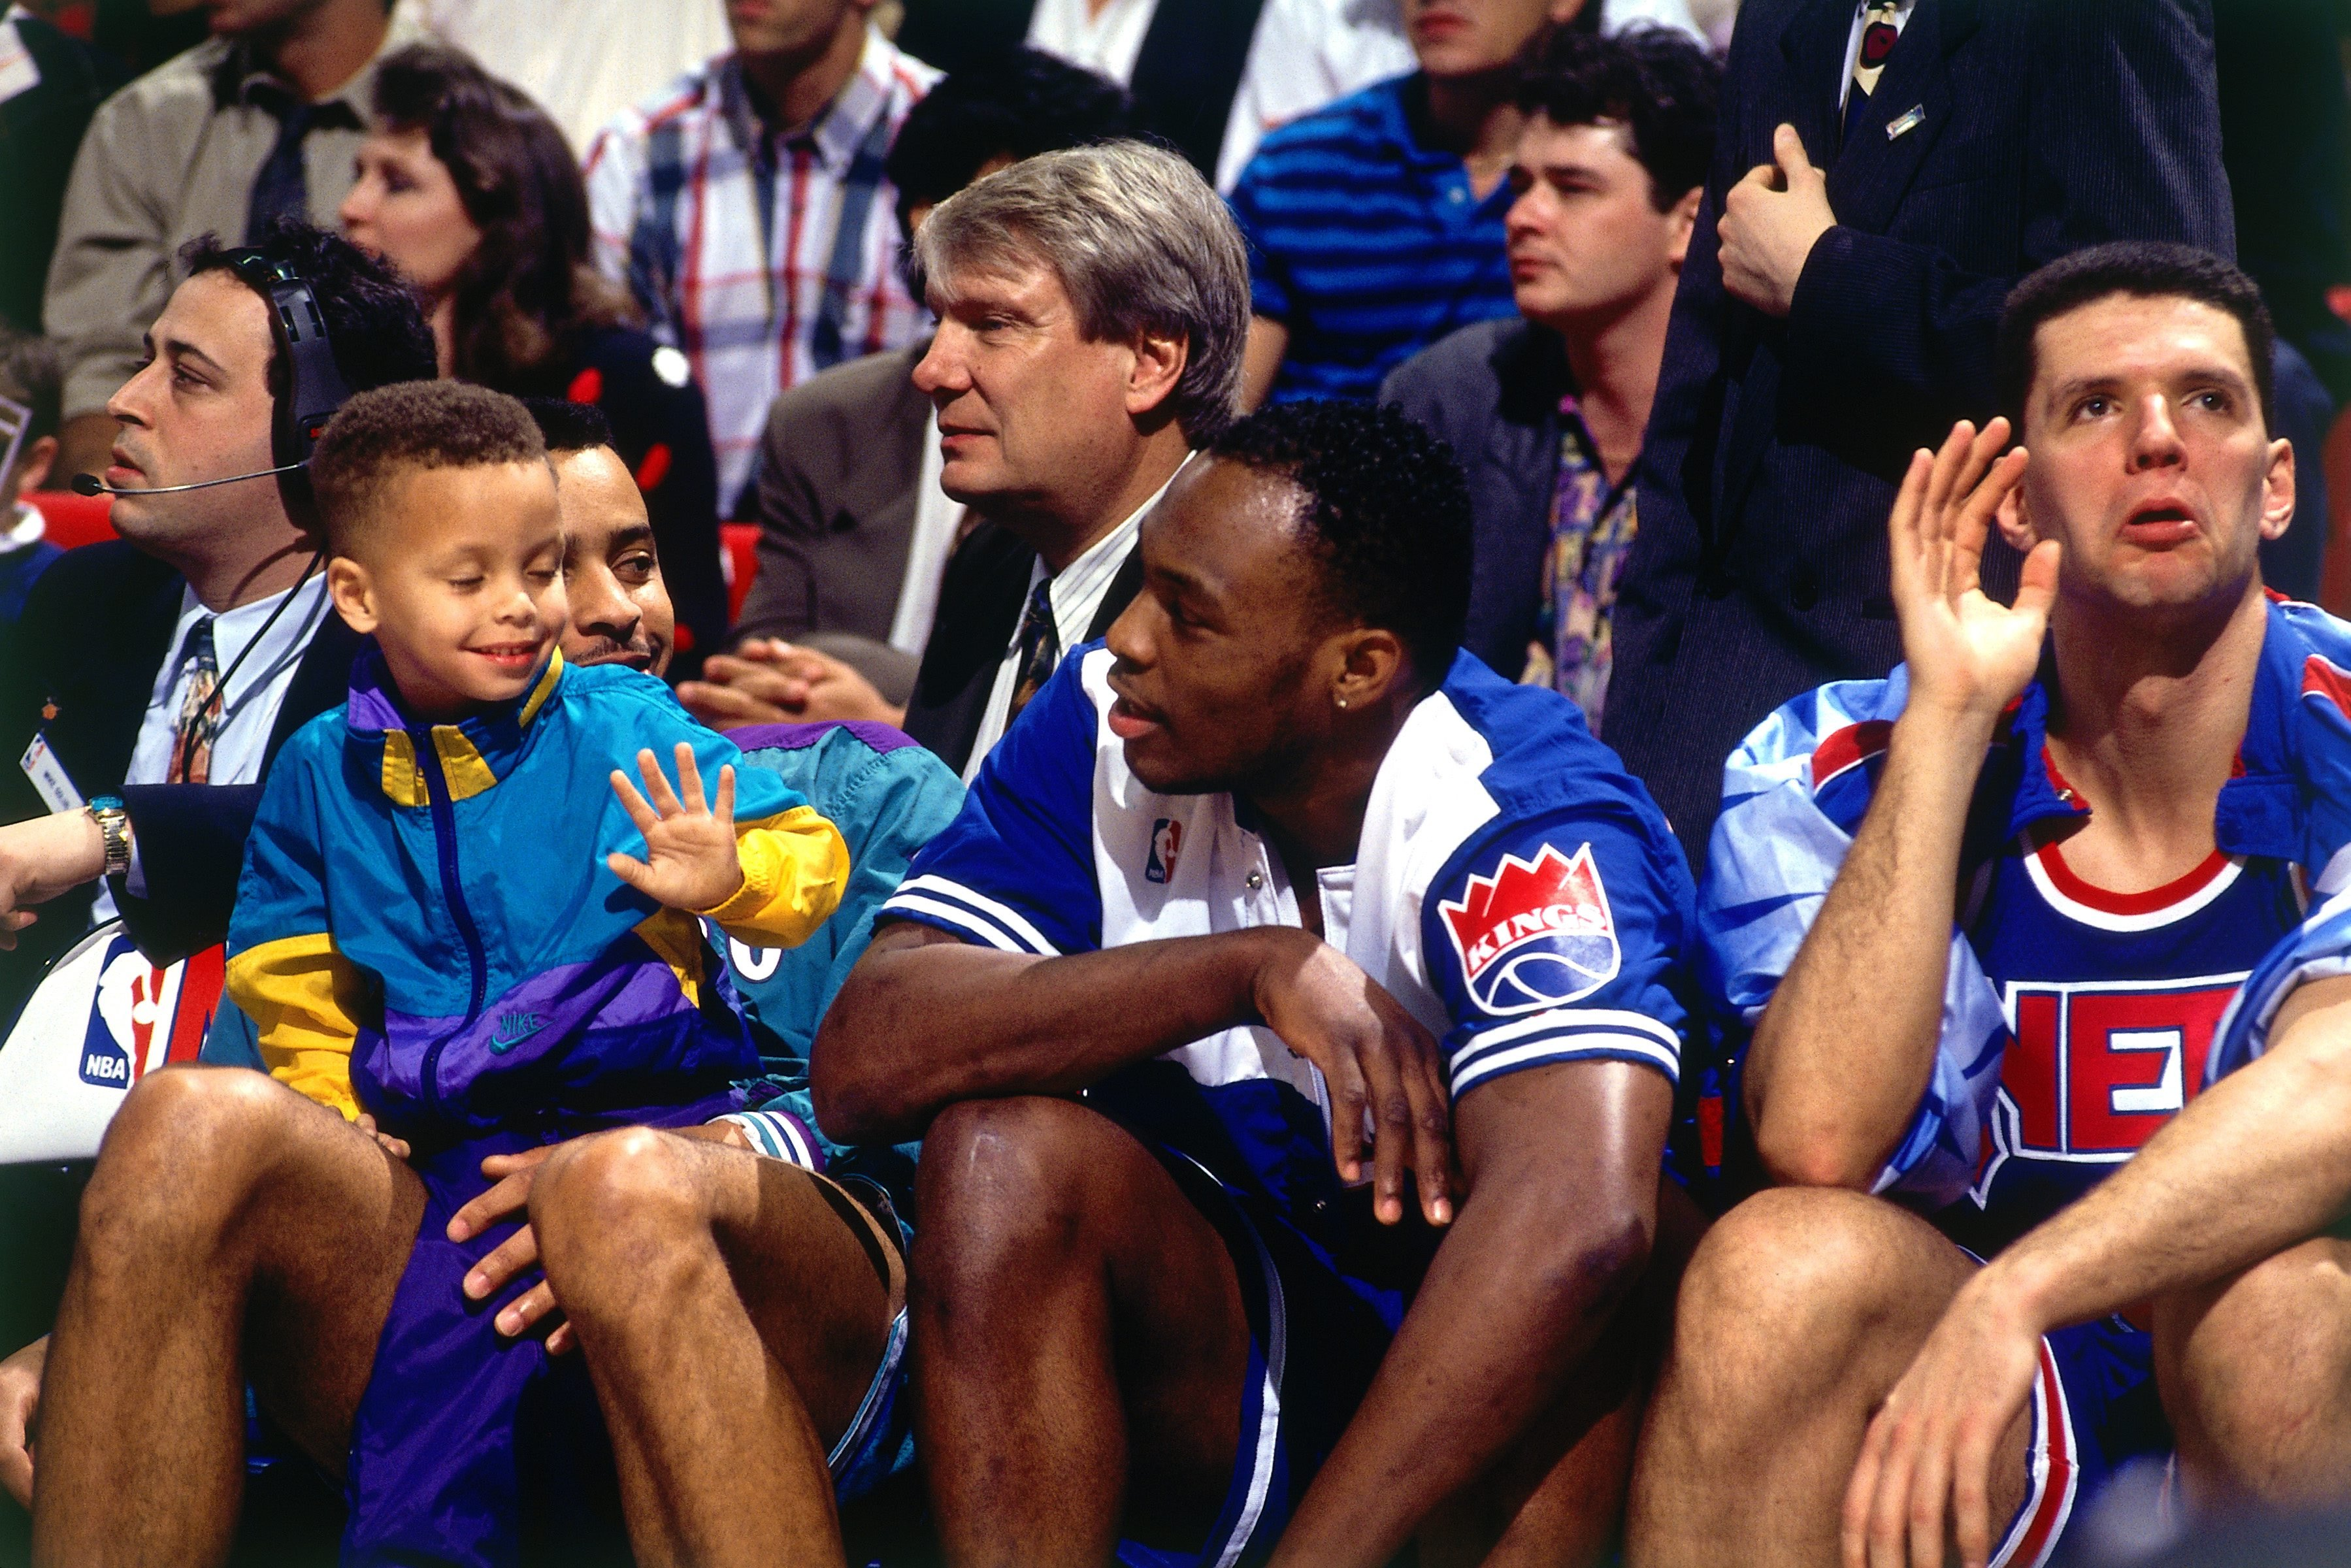 ORLANDO - FEBRUARY 8:  (L) Dell Curry #30 of the Charlotte Hornets and his son Stephen Curry sit with Mitch Richmond #2 of the Sacramento Kings and Drazen Petrovic #3 of the New Jersey Nets during the 1992 NBA Three Point Competition on February 8, 1992 at the Orlando Arena in Orlando, Florida. NOTE TO USER: User expressly acknowledges that, by downloading and or using this photograph, User is consenting to the terms and conditions of the Getty Images License agreement. Mandatory Copyright Notice: Copyright 1992 NBAE (Photo by Andrew D. Bernstein/NBAE via Getty Images)